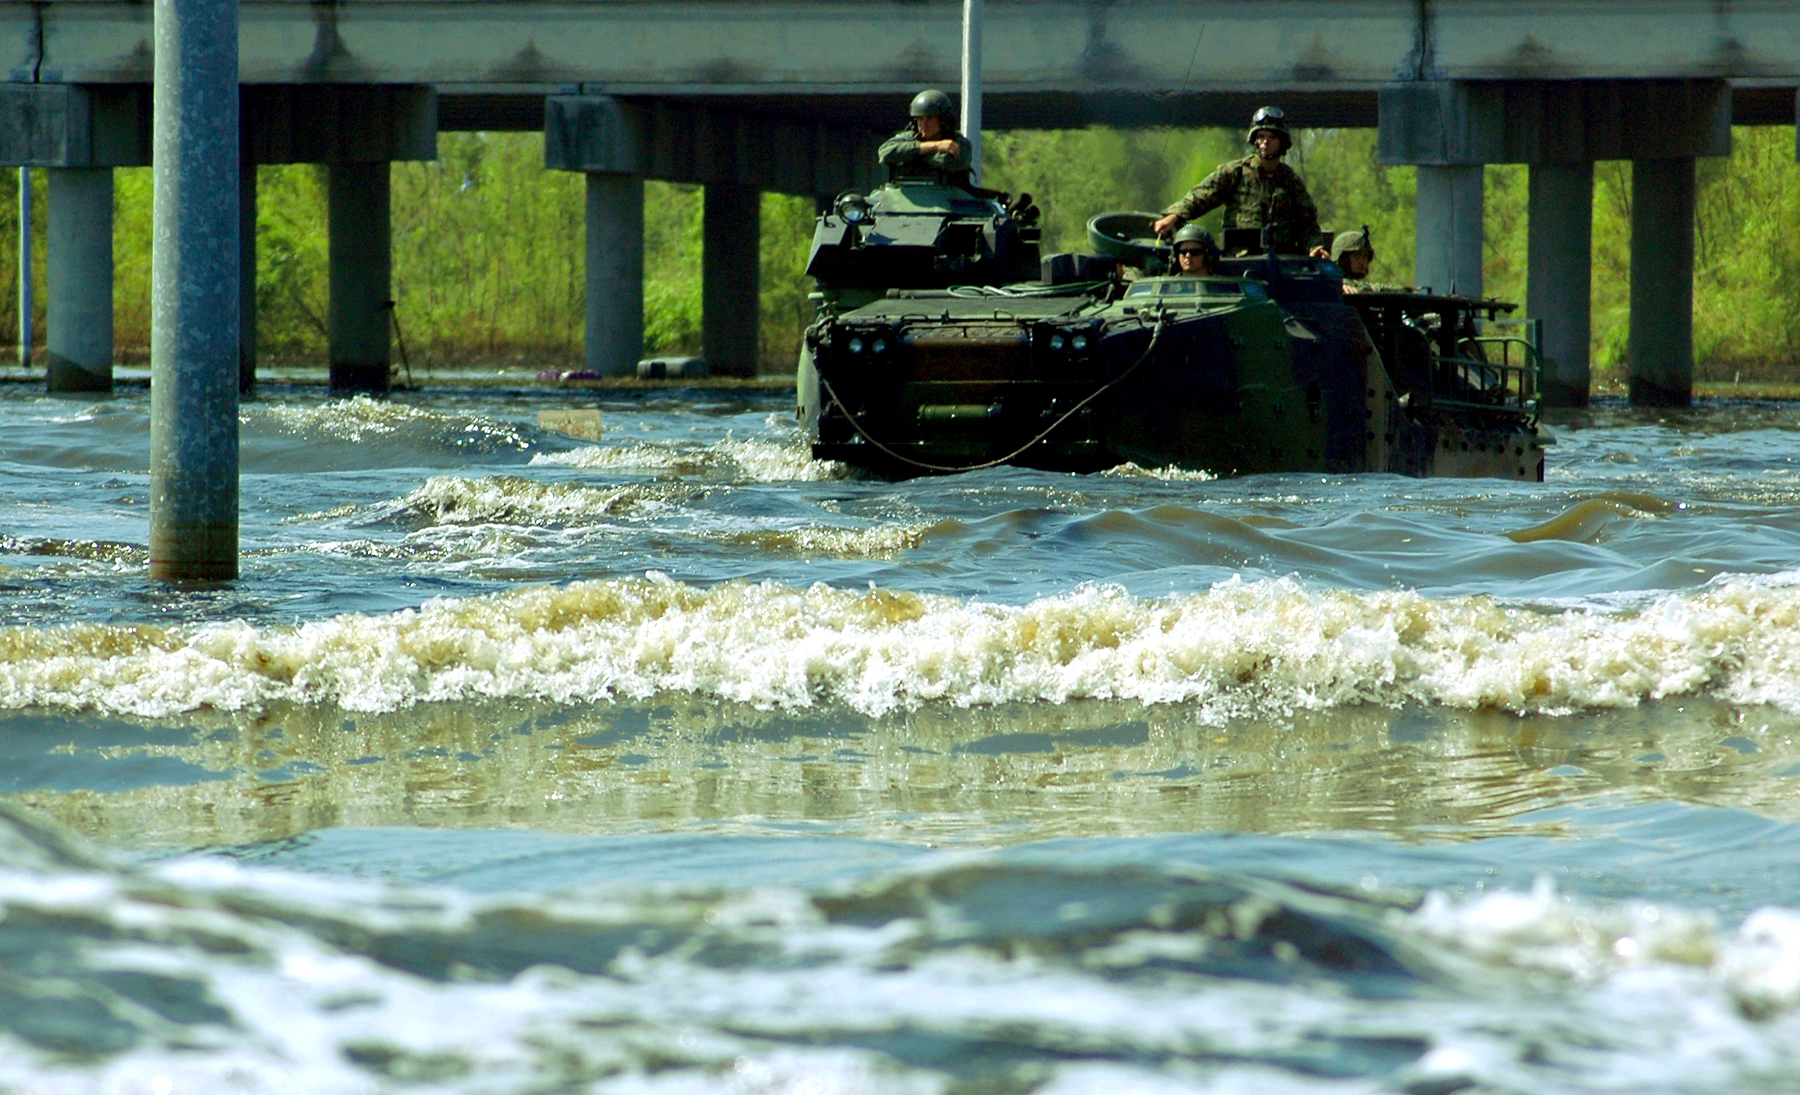 10 years after hurricane katrina the sea service response usni news marines aboard an assault amphibian vehicle venture through waves and polluted water through the devastated neighborhoods